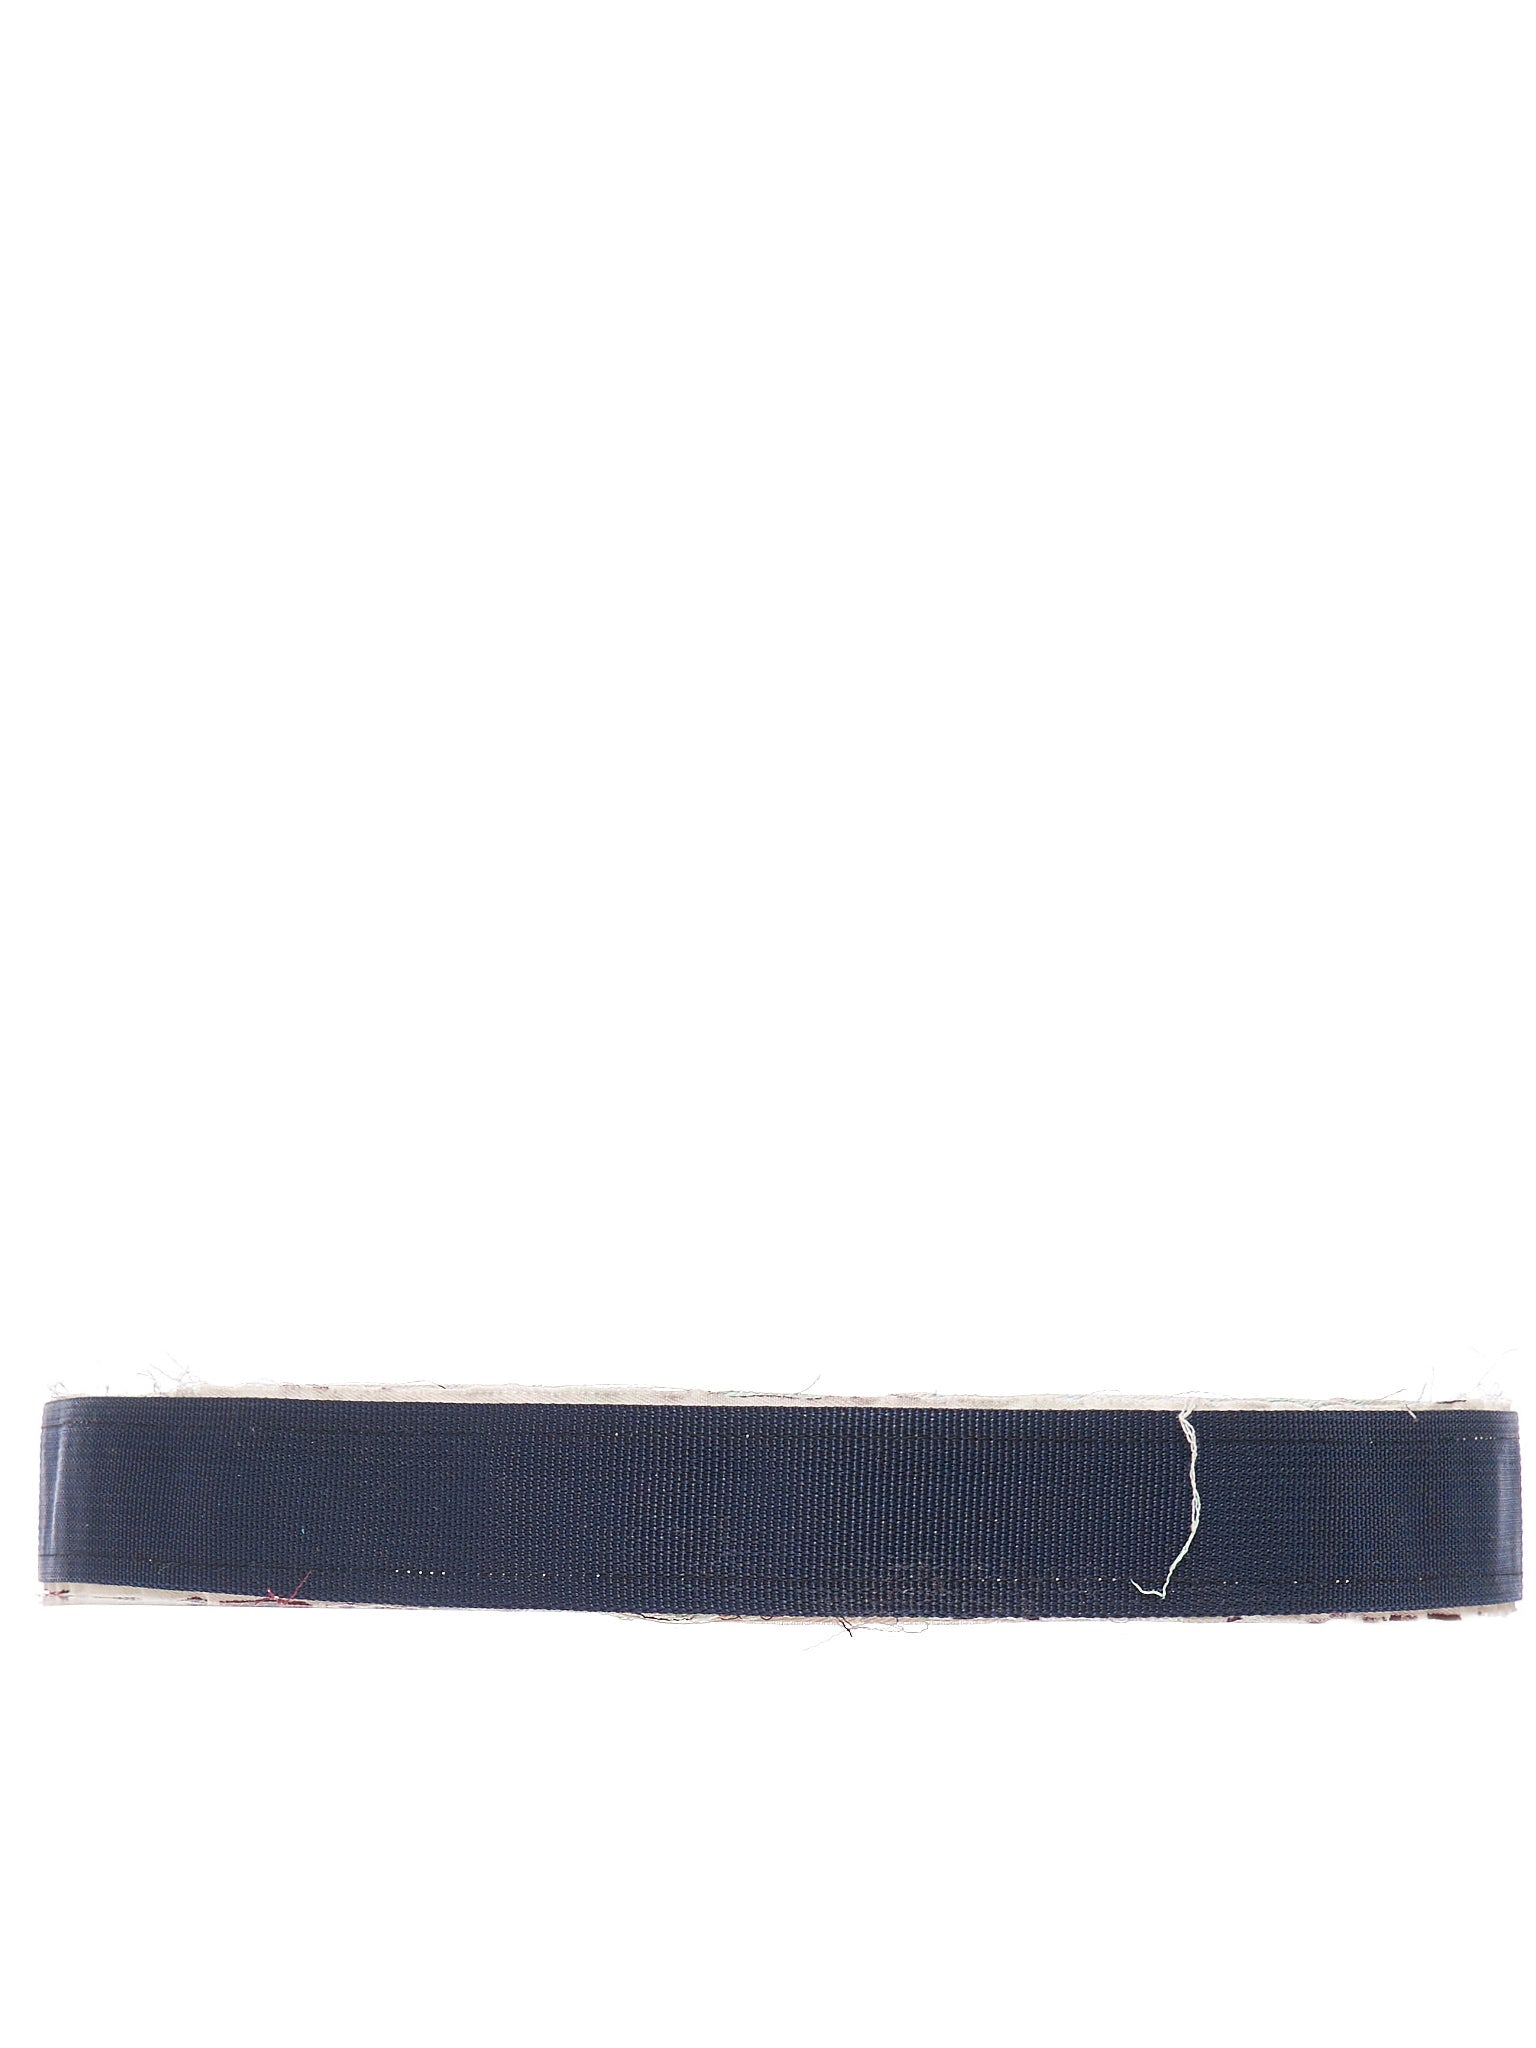 Unfinished Belt (NN13-ACC08-NAVY)